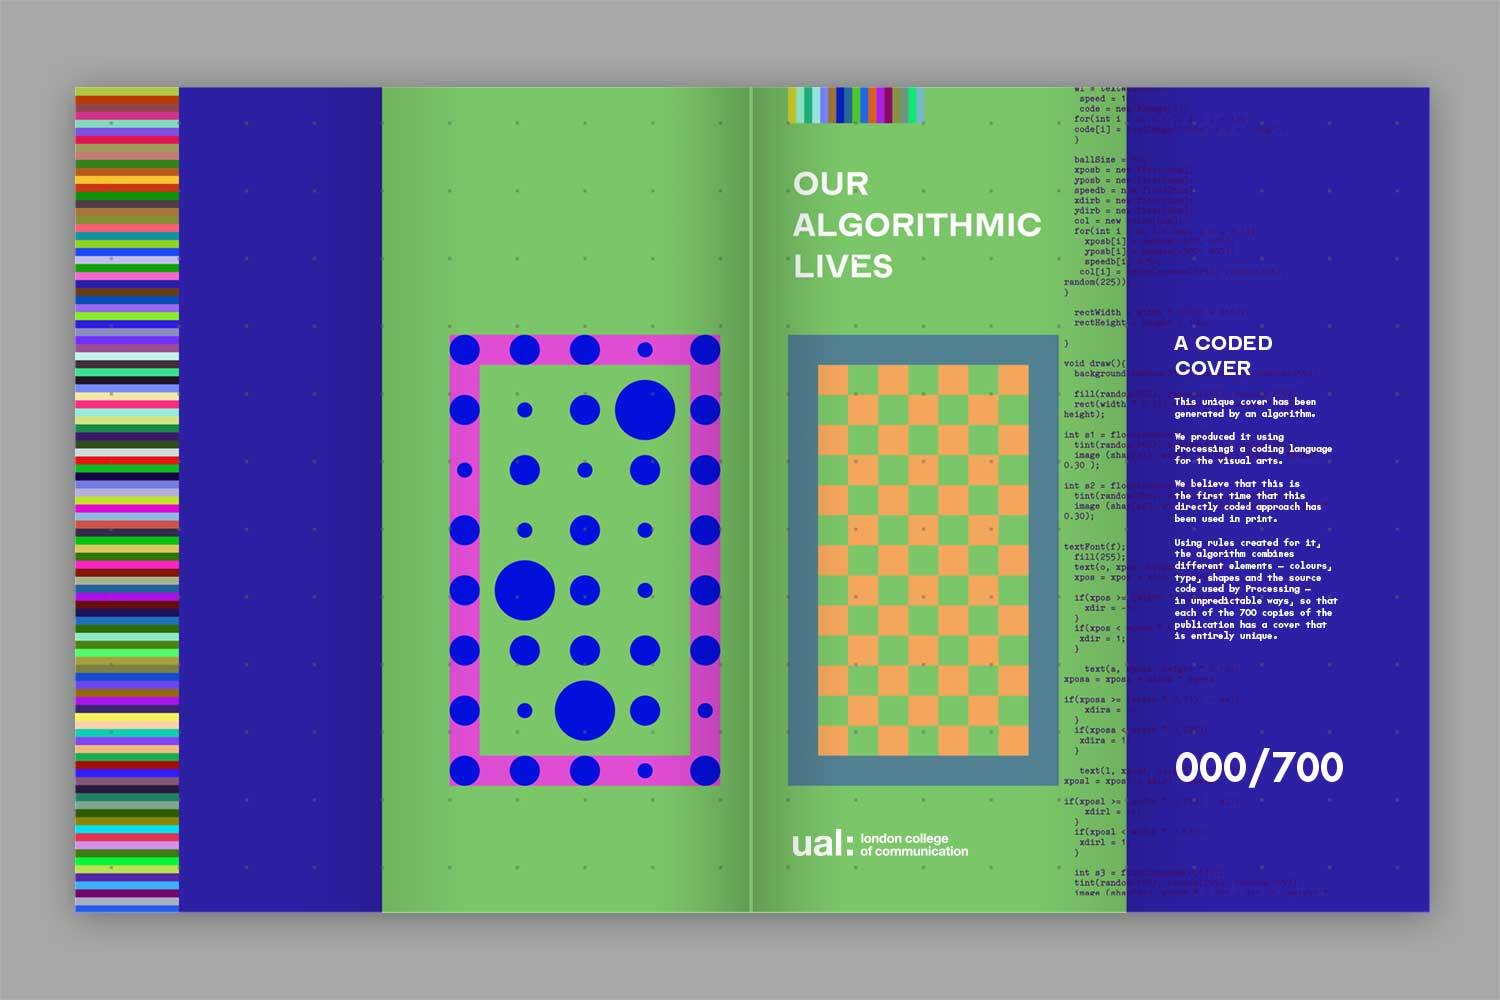 One of the 700 covers for 'our algorithmic lives' publication.